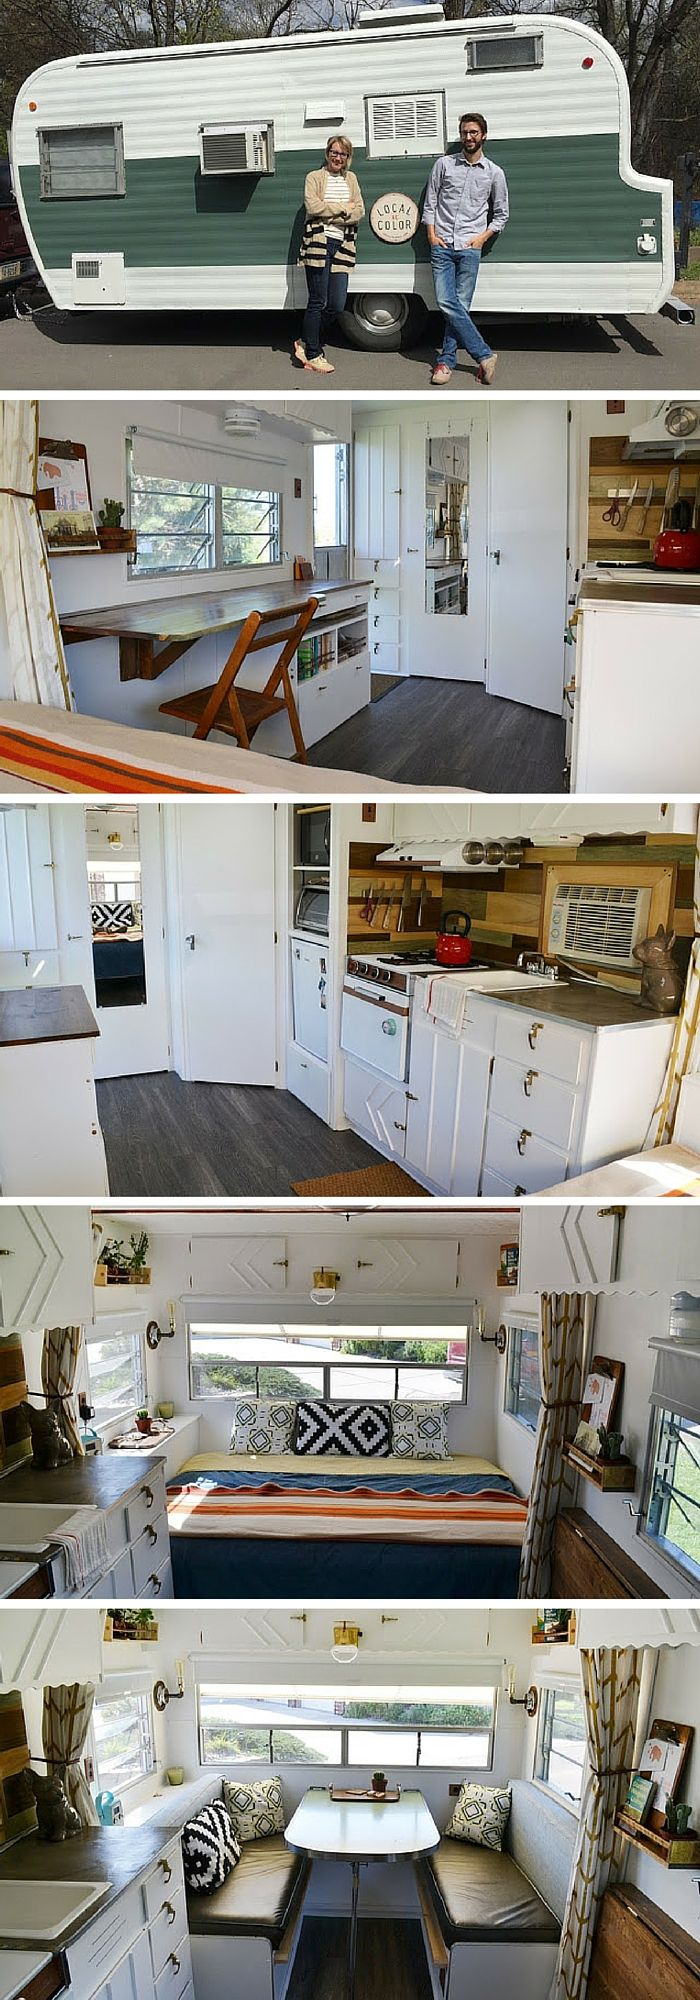 Camper Trailer Kitchen Designs 90 Interior Design Ideas For Camper Van Campers Cabinets And